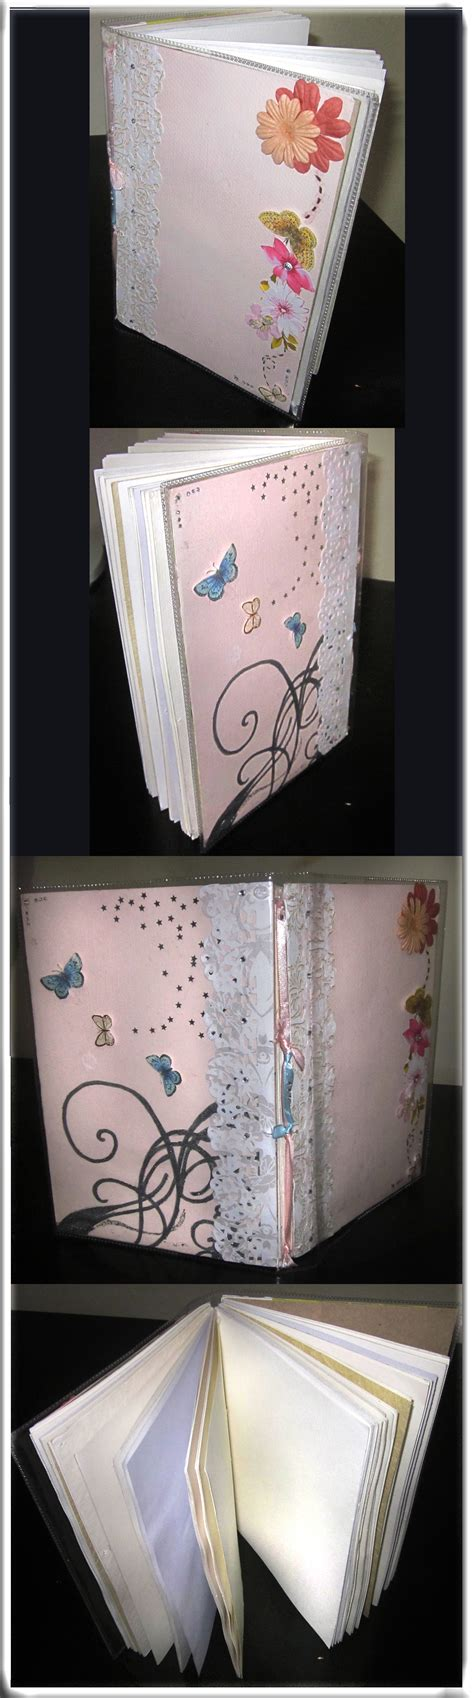 sketchbook handmade handmade watercolor sketchbook by velcake on deviantart